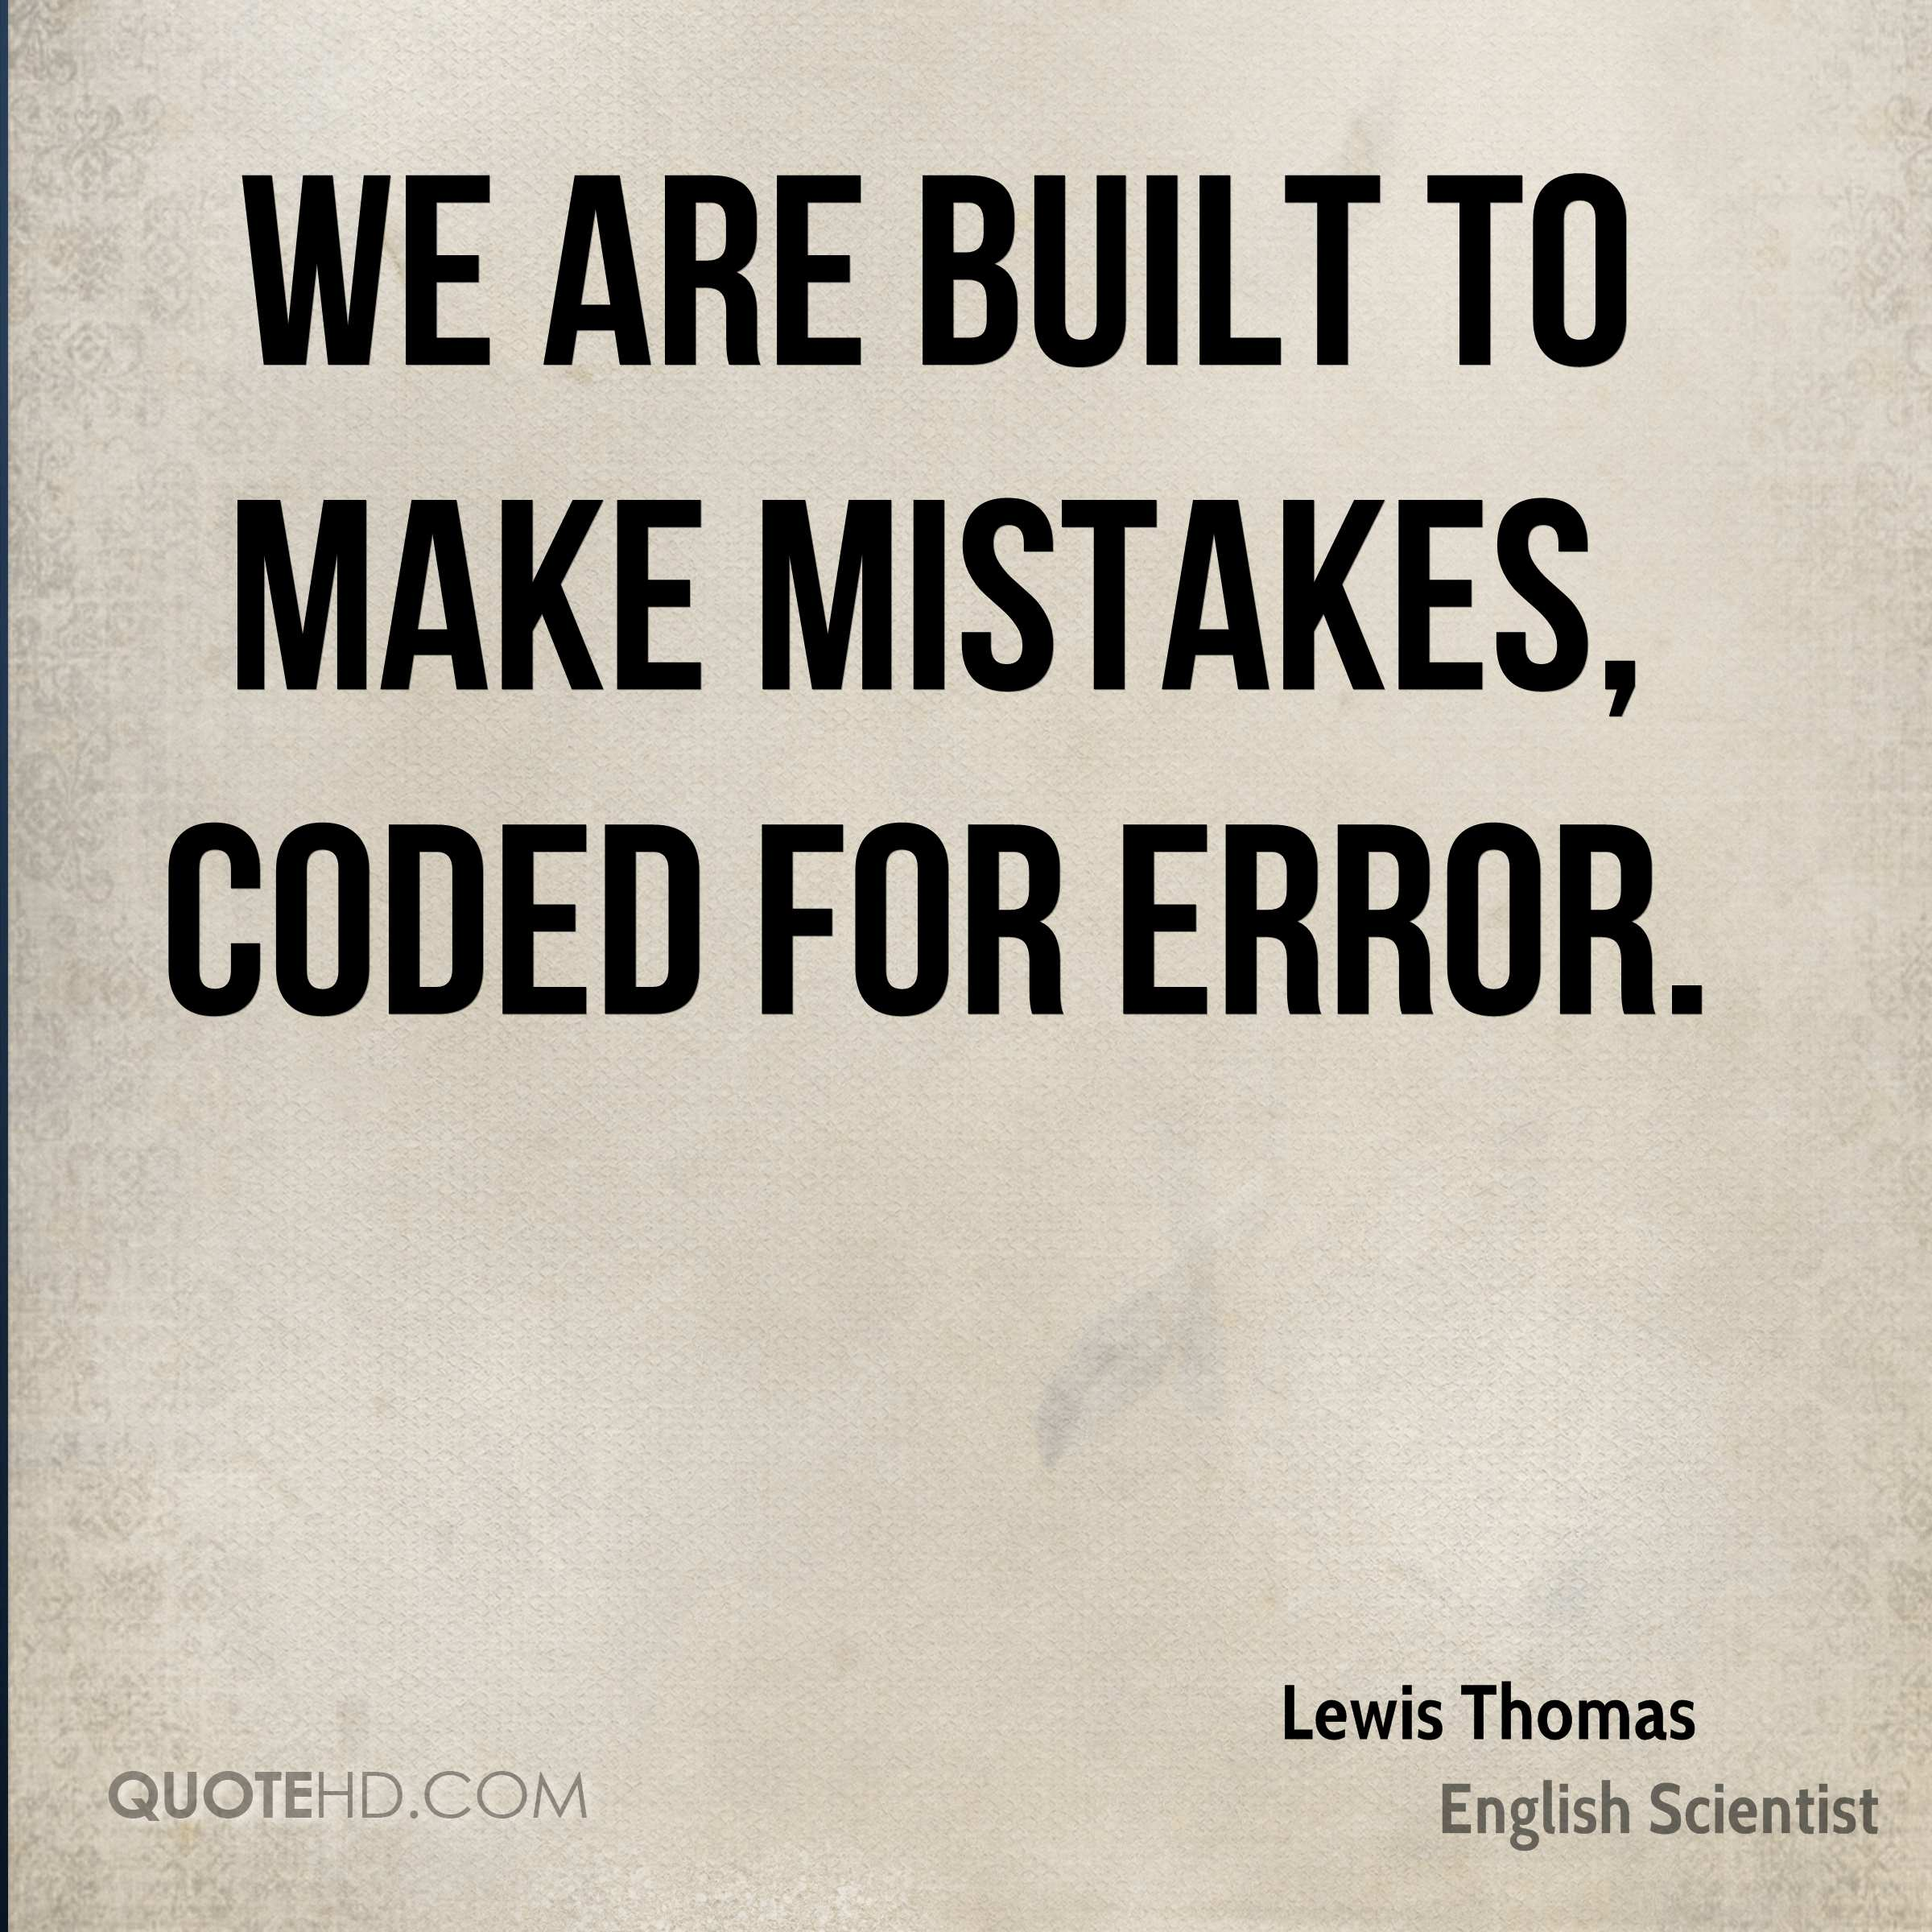 We are built to make mistakes, coded for error.